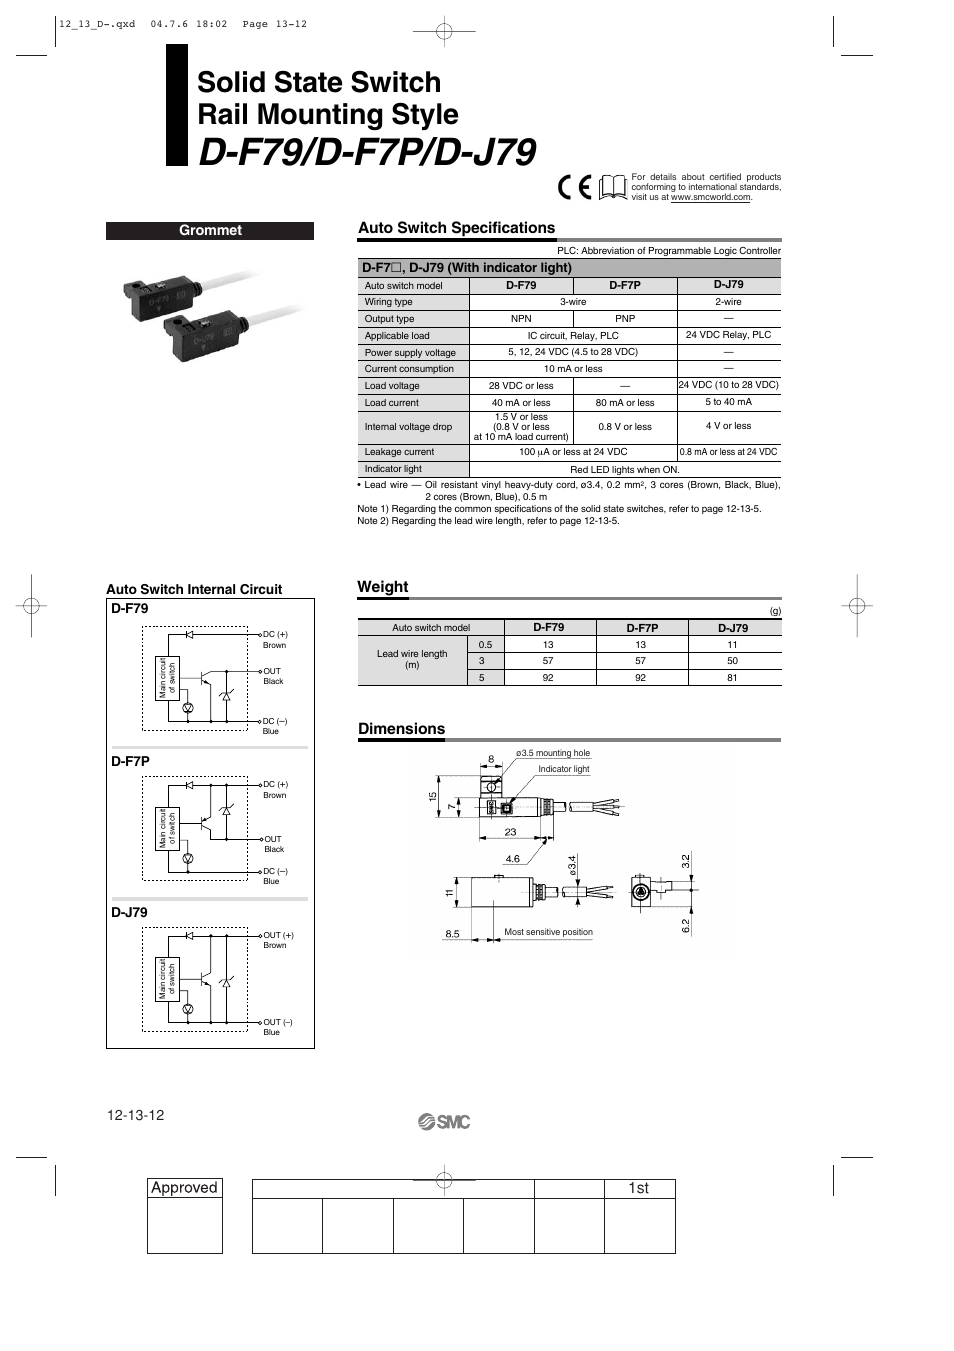 medium resolution of solid state switch general purpose type d f79 d f7p